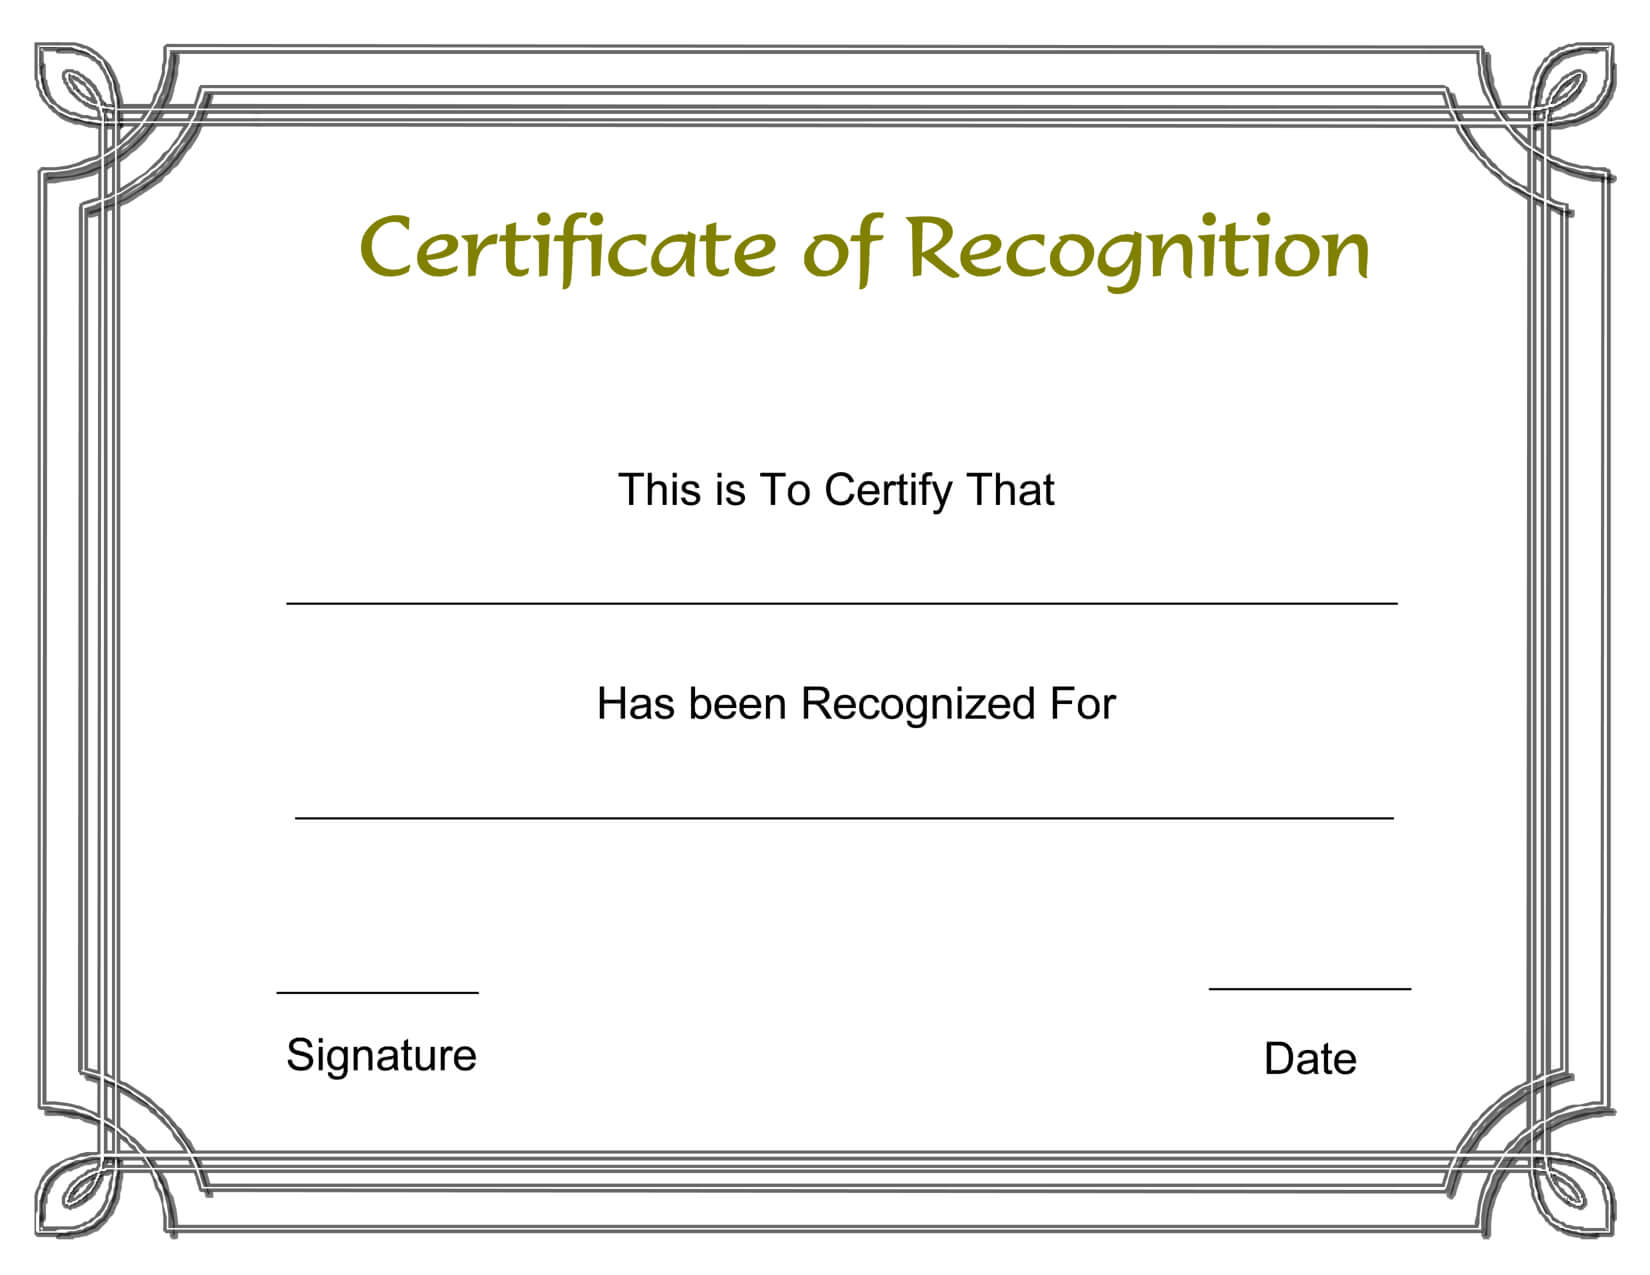 Template Free Award Certificate Templates And Employee regarding Soccer Certificate Templates For Word